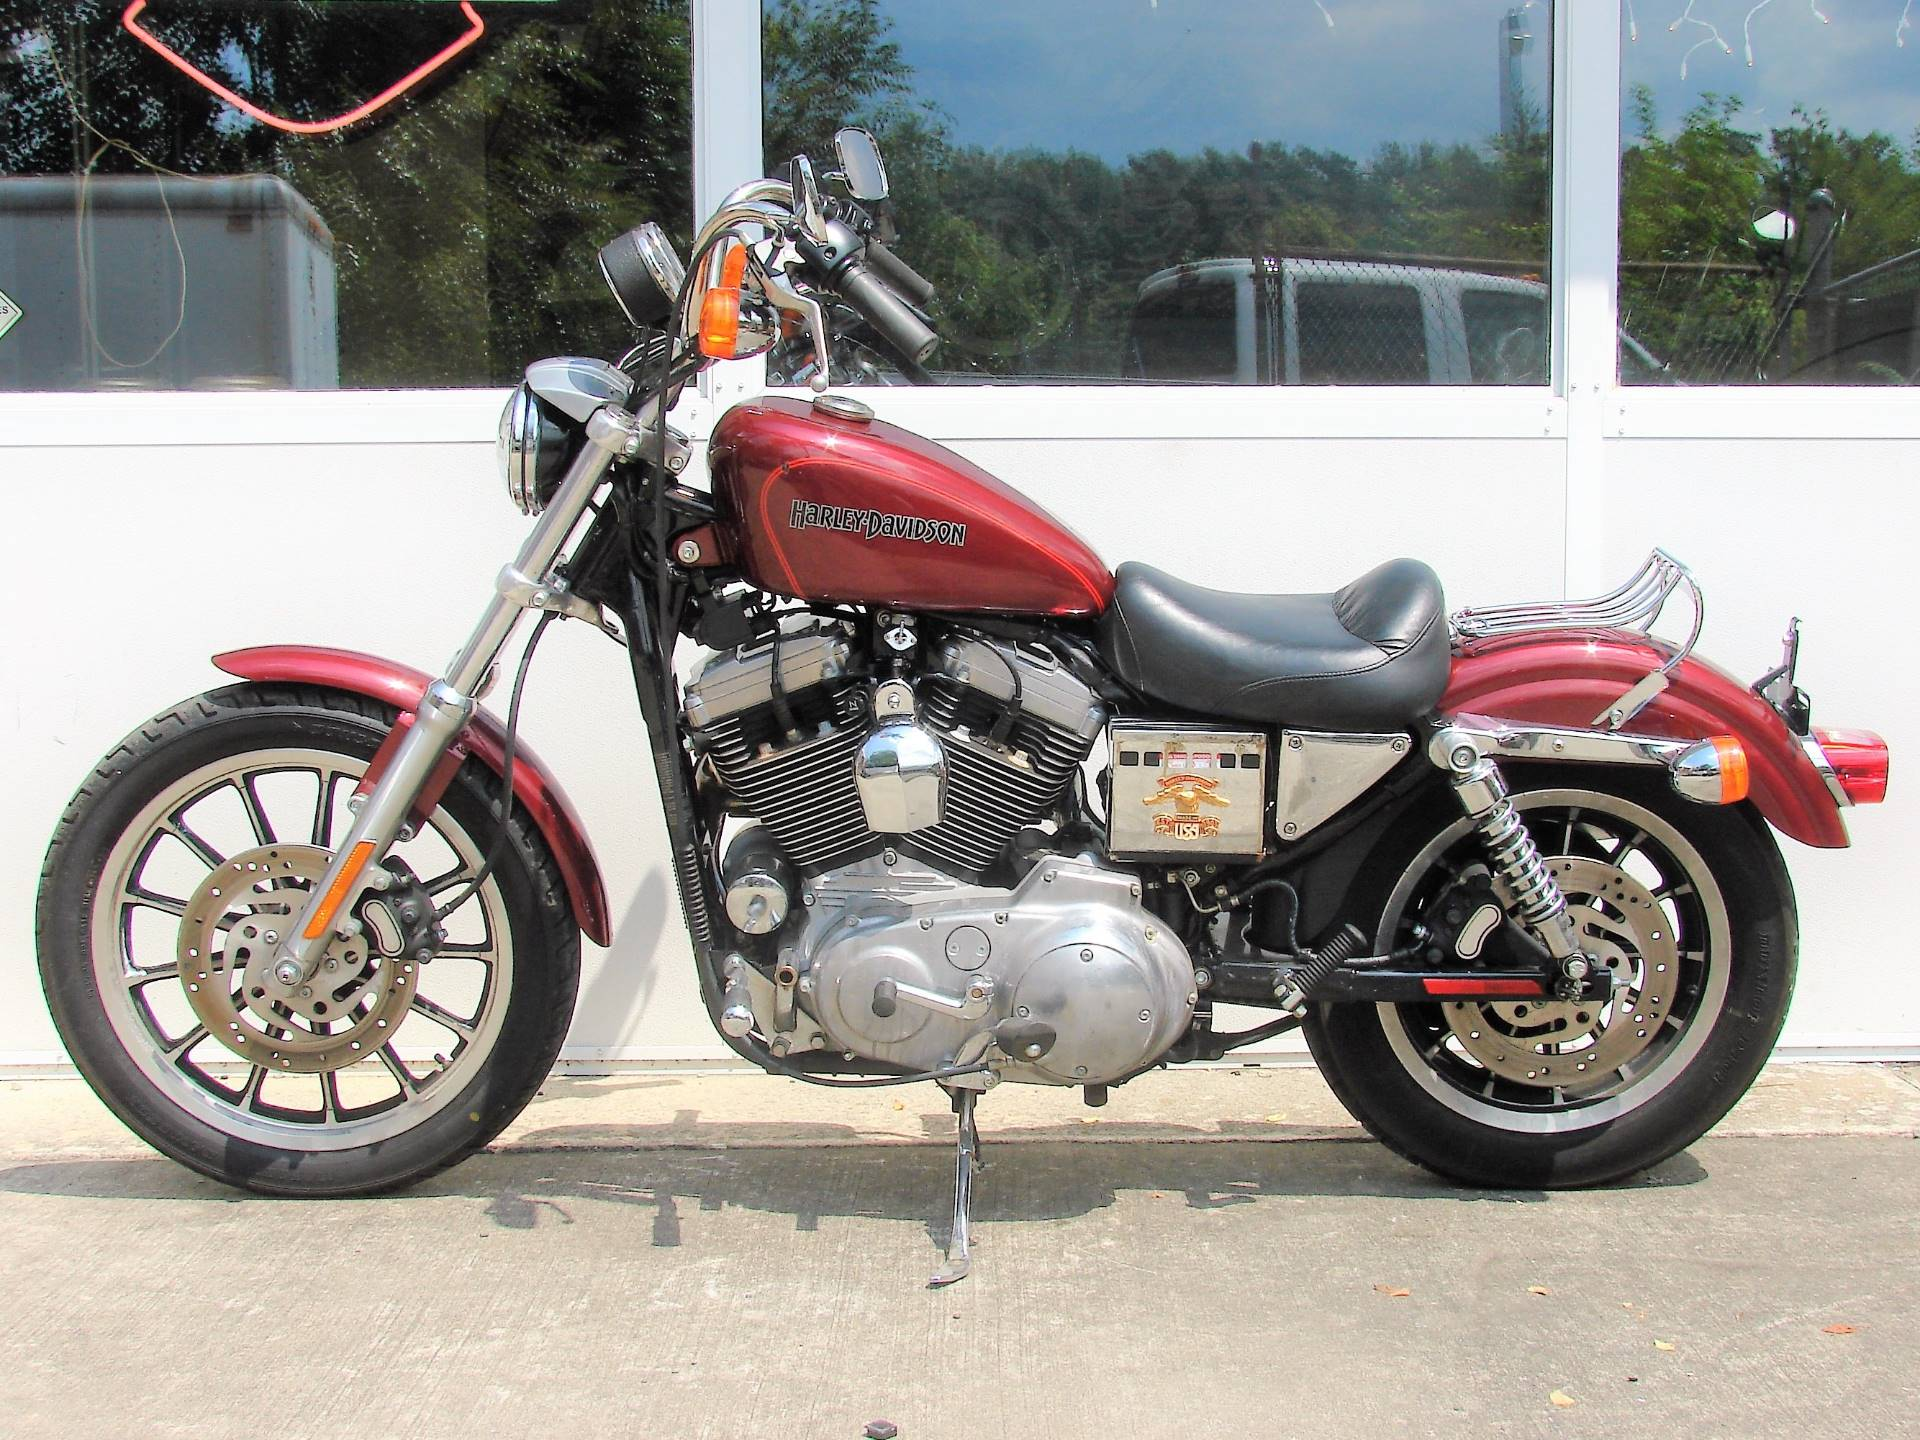 2001 Harley-Davidson XL 1200 Sportster  (EVO) in Williamstown, New Jersey - Photo 16